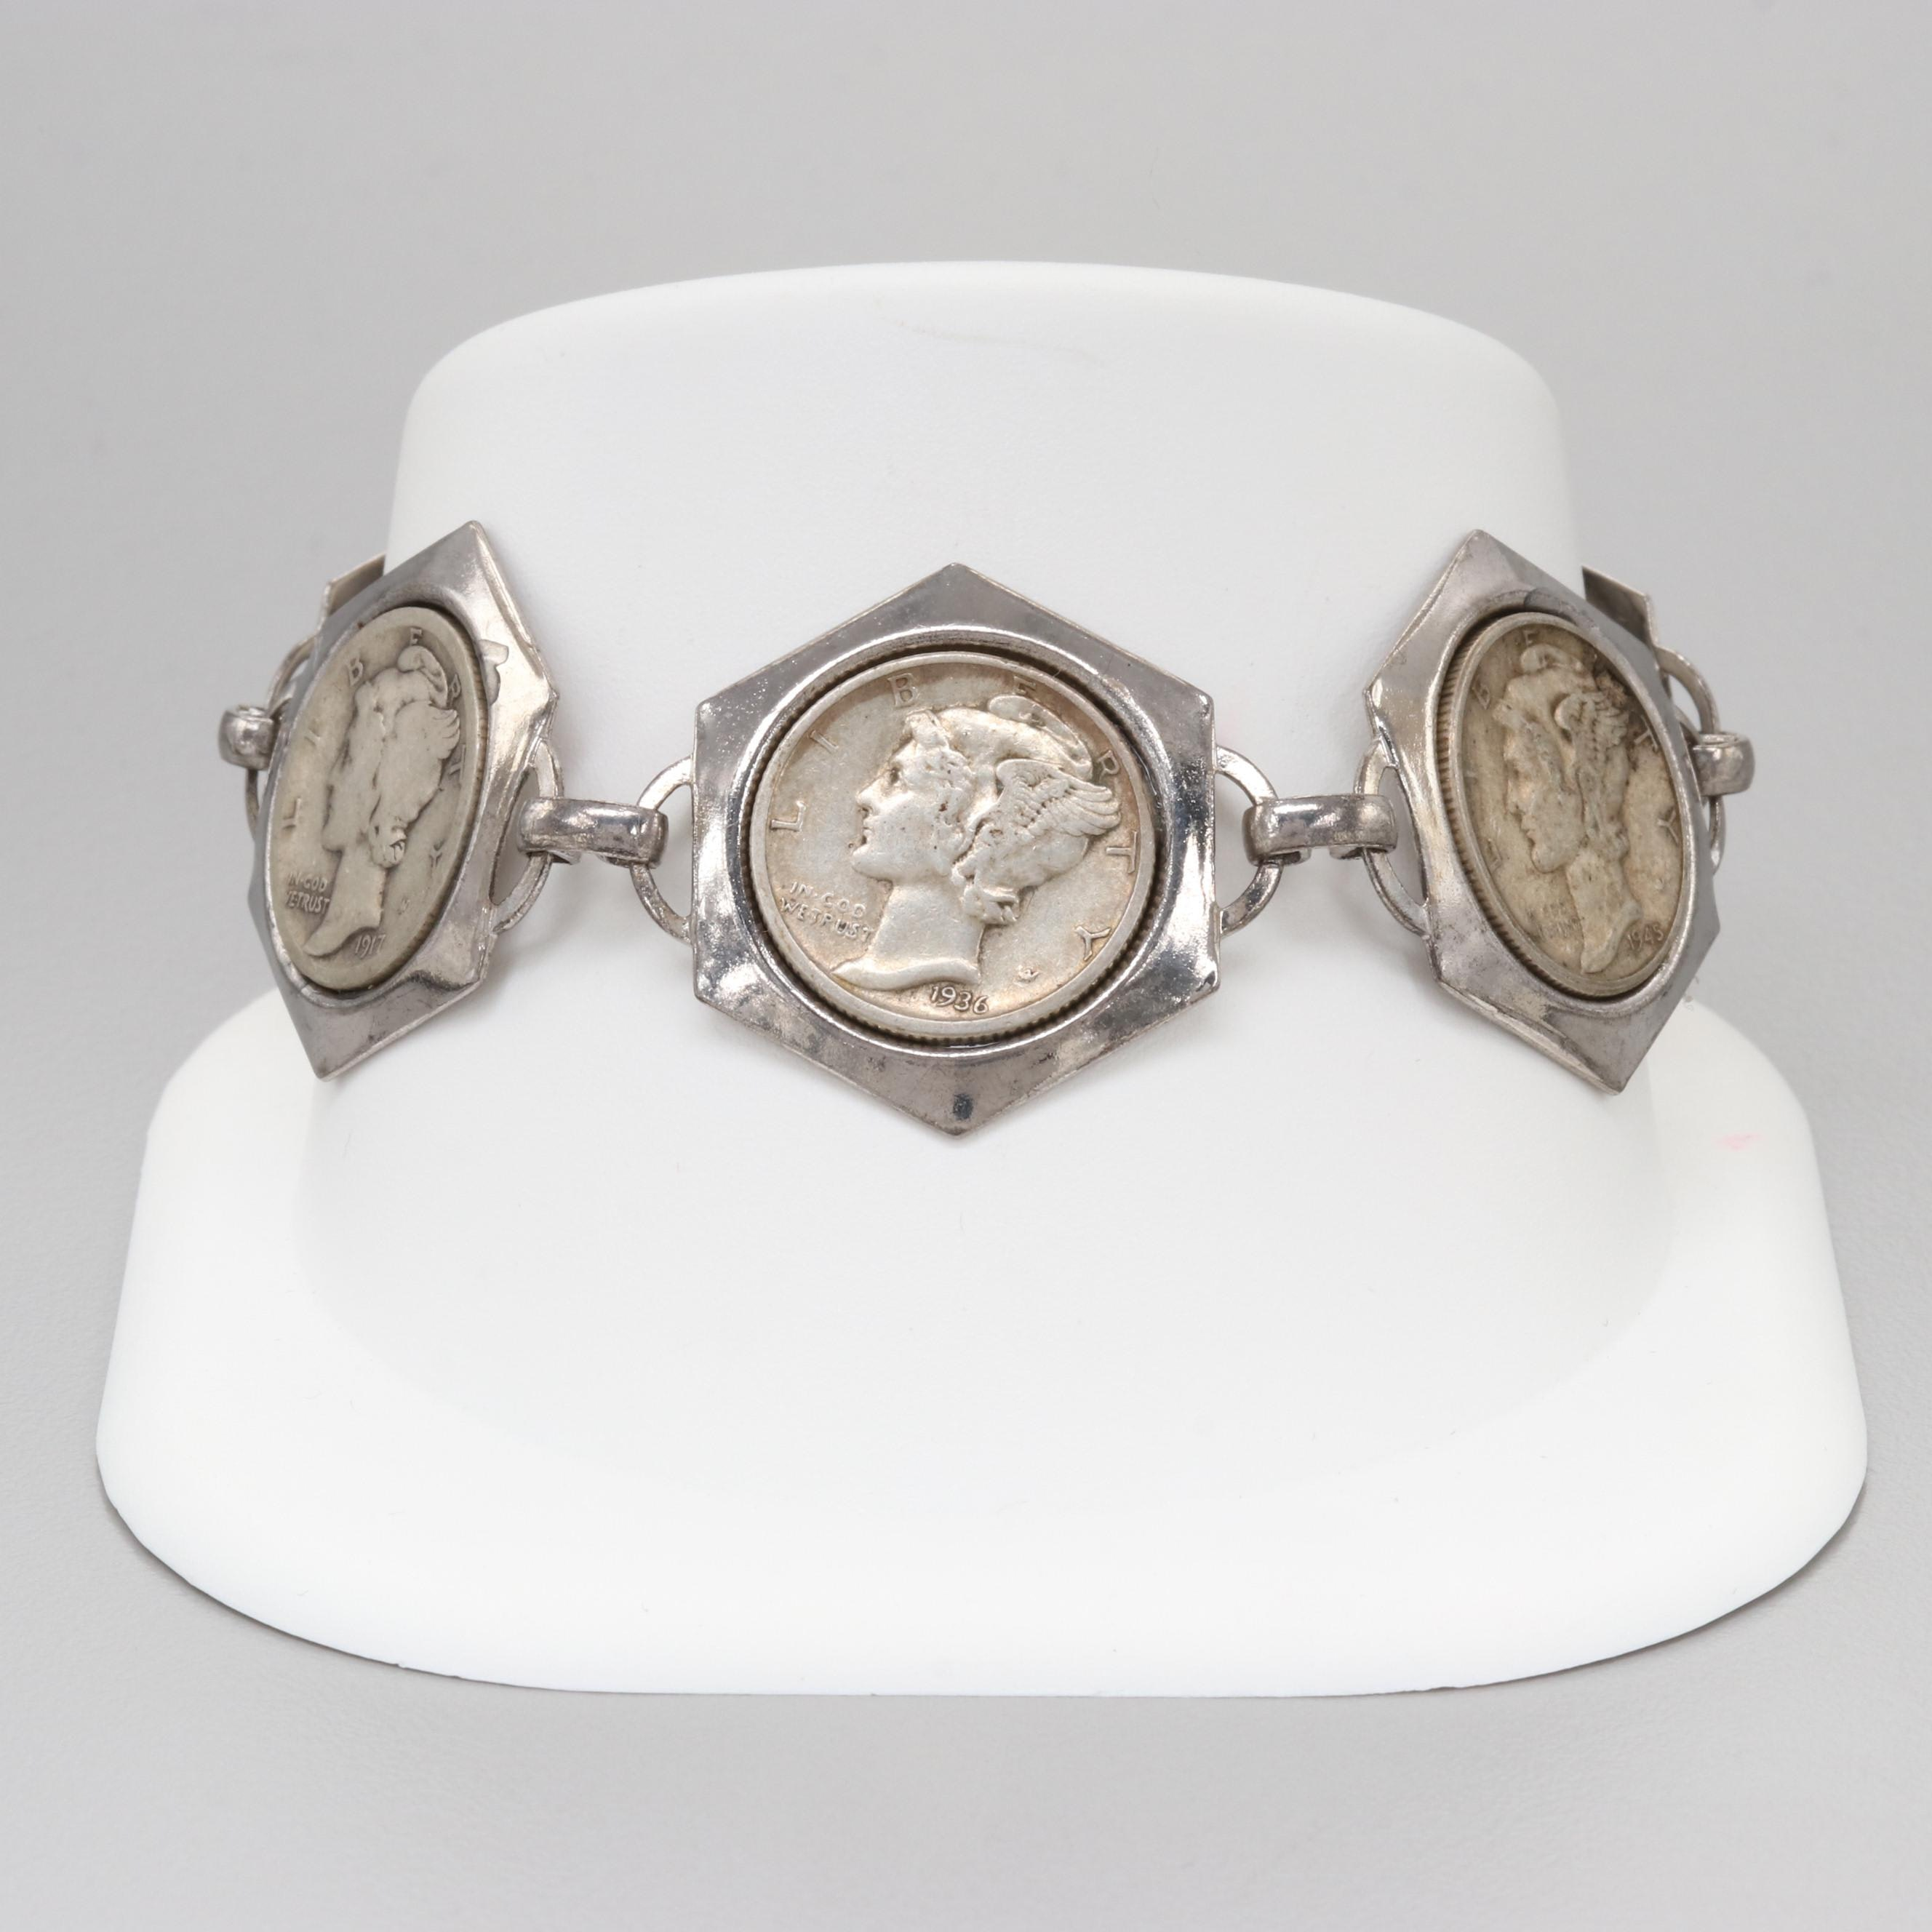 Silver Tone Coin Bracelet with 900 Silver Coins